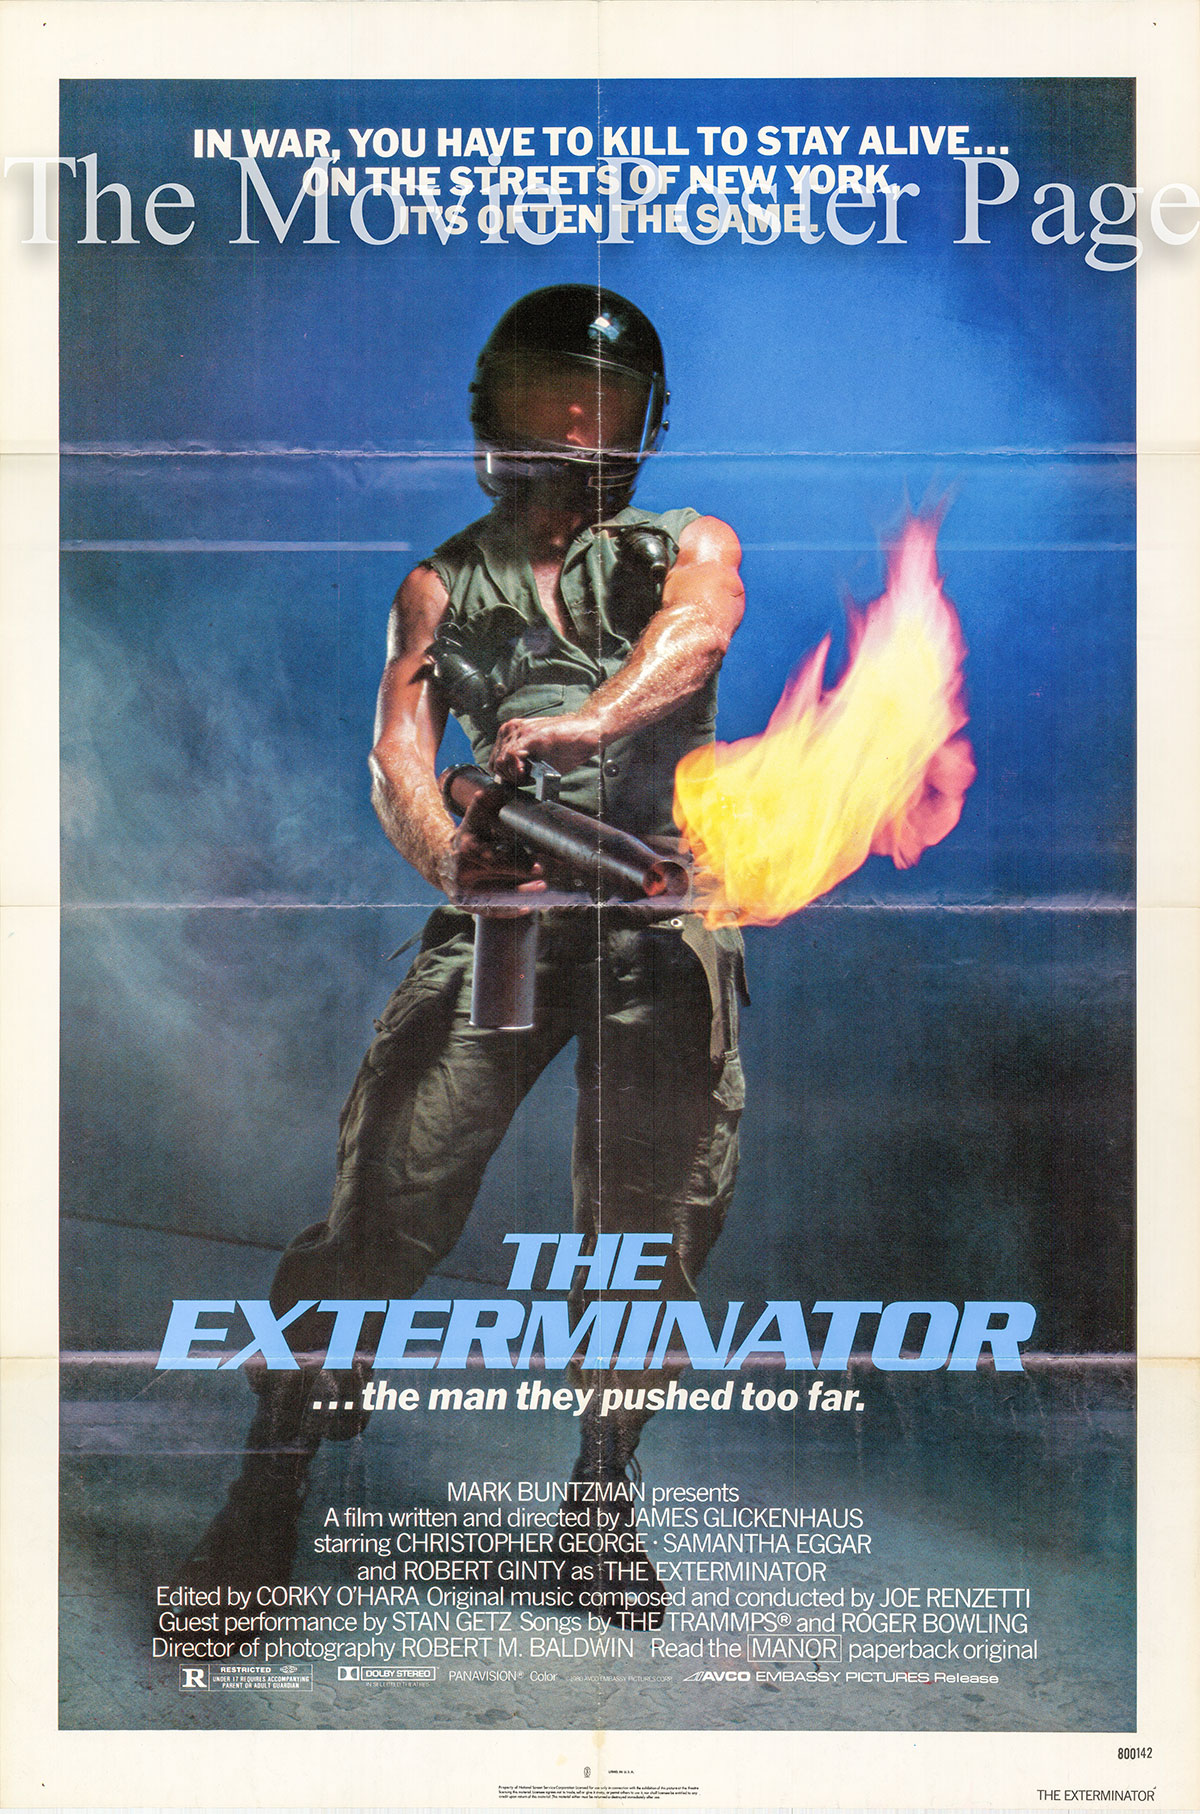 Pictured is a US one-sheet poster for the 1980 James Glickenhaus film The Exterminator starring Christopher George.